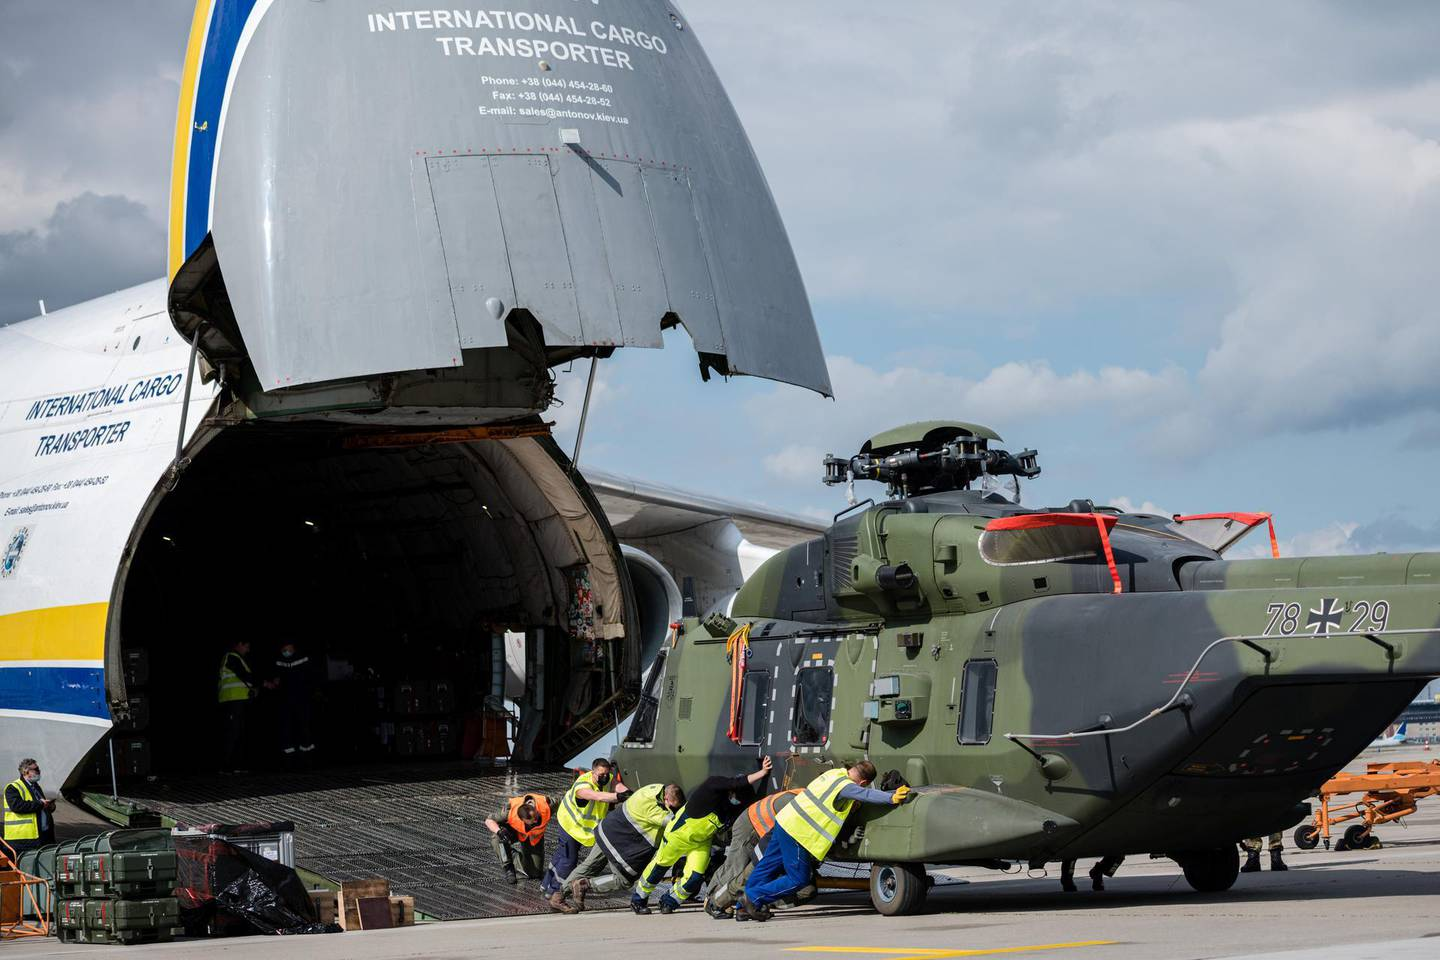 LEIPZIG, GERMANY - MAY 18: Soldiers of the Bundeswehr, Germany's armed forces, unload an NH90 transport helicopter from a plane Antonov AN-124 for military transport arriving from Afghanistan at Leizpig Airport on May 18, 2021 in Leipzig, Germany. Germany has begun pulling out its approximately 1,100 remaining troops from Afghanistan in accordance with the general withdrawal of NATO forces. A total of 53 Bundeswehr soldiers have been killed in Afghanistan since 2002.  (Photo by Jens Schlueter/Getty Images)